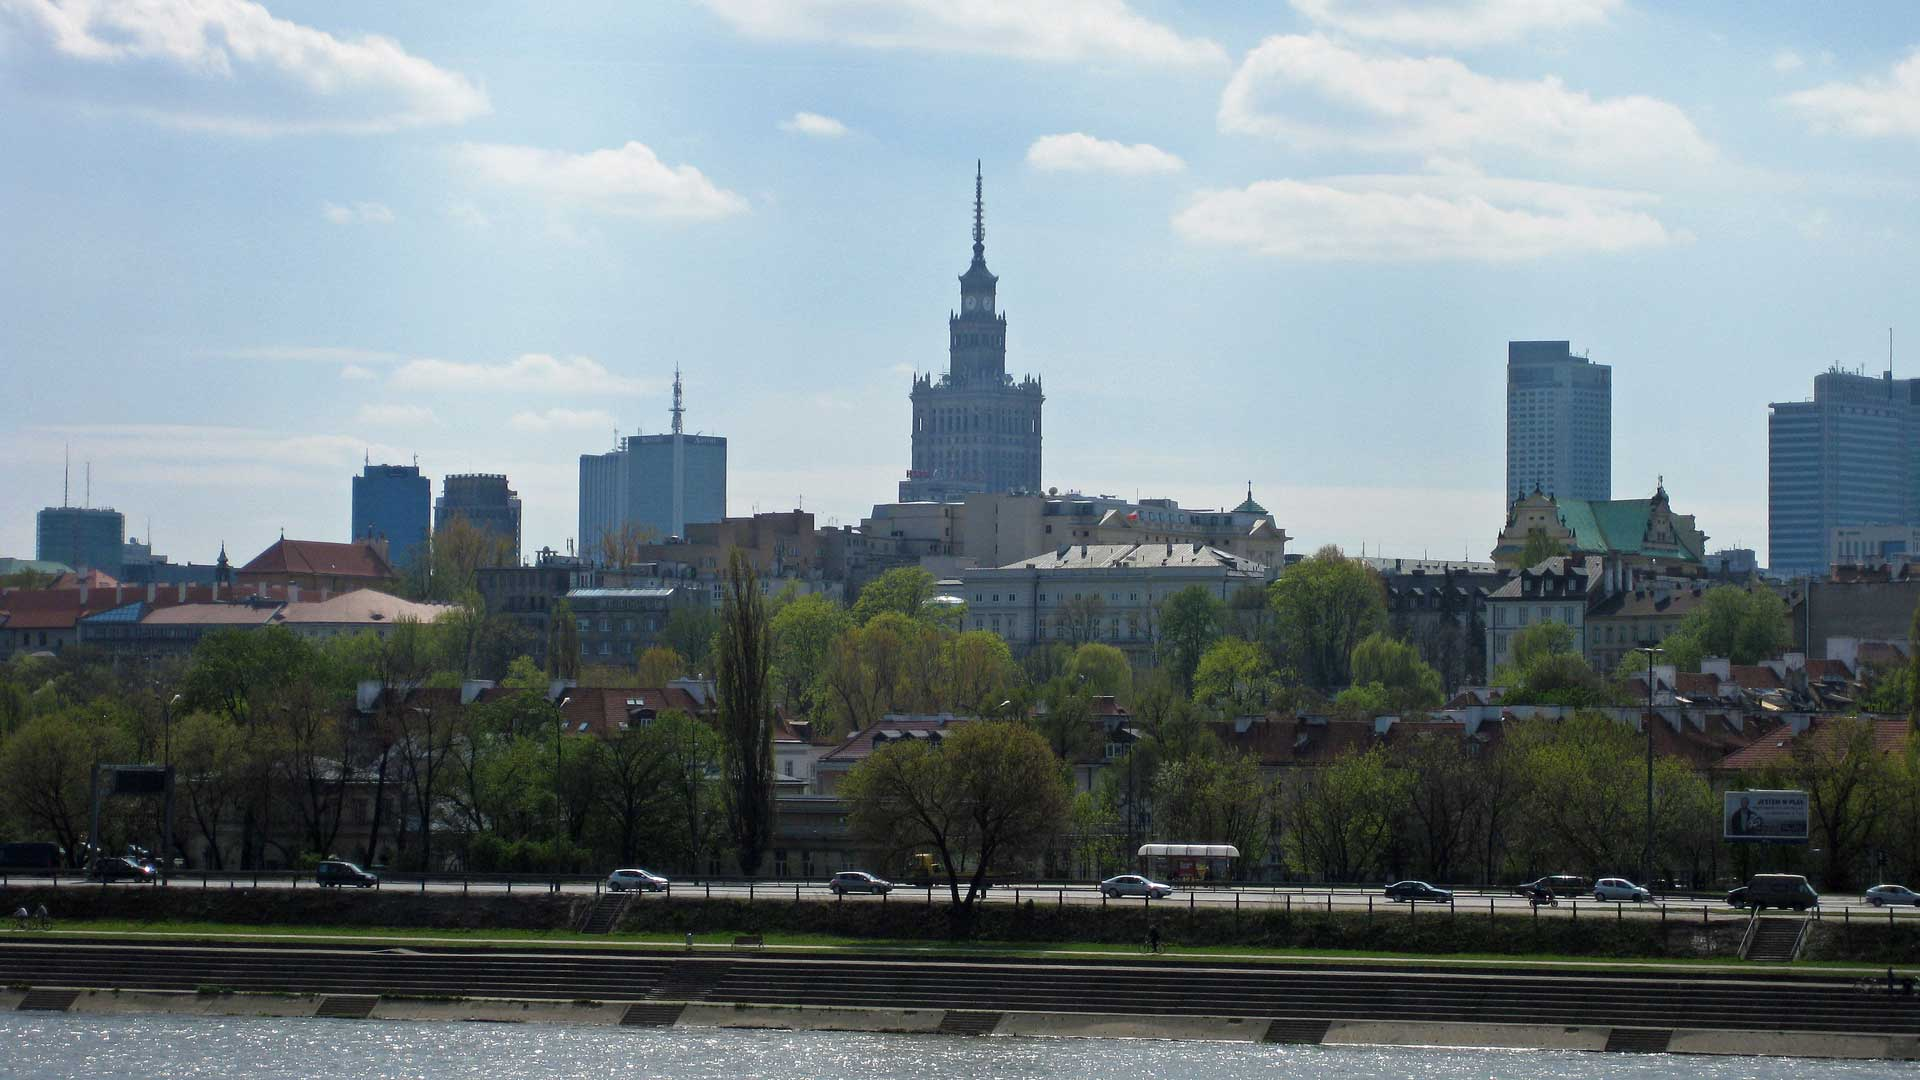 palace-of-culture-warsaw-poland-8